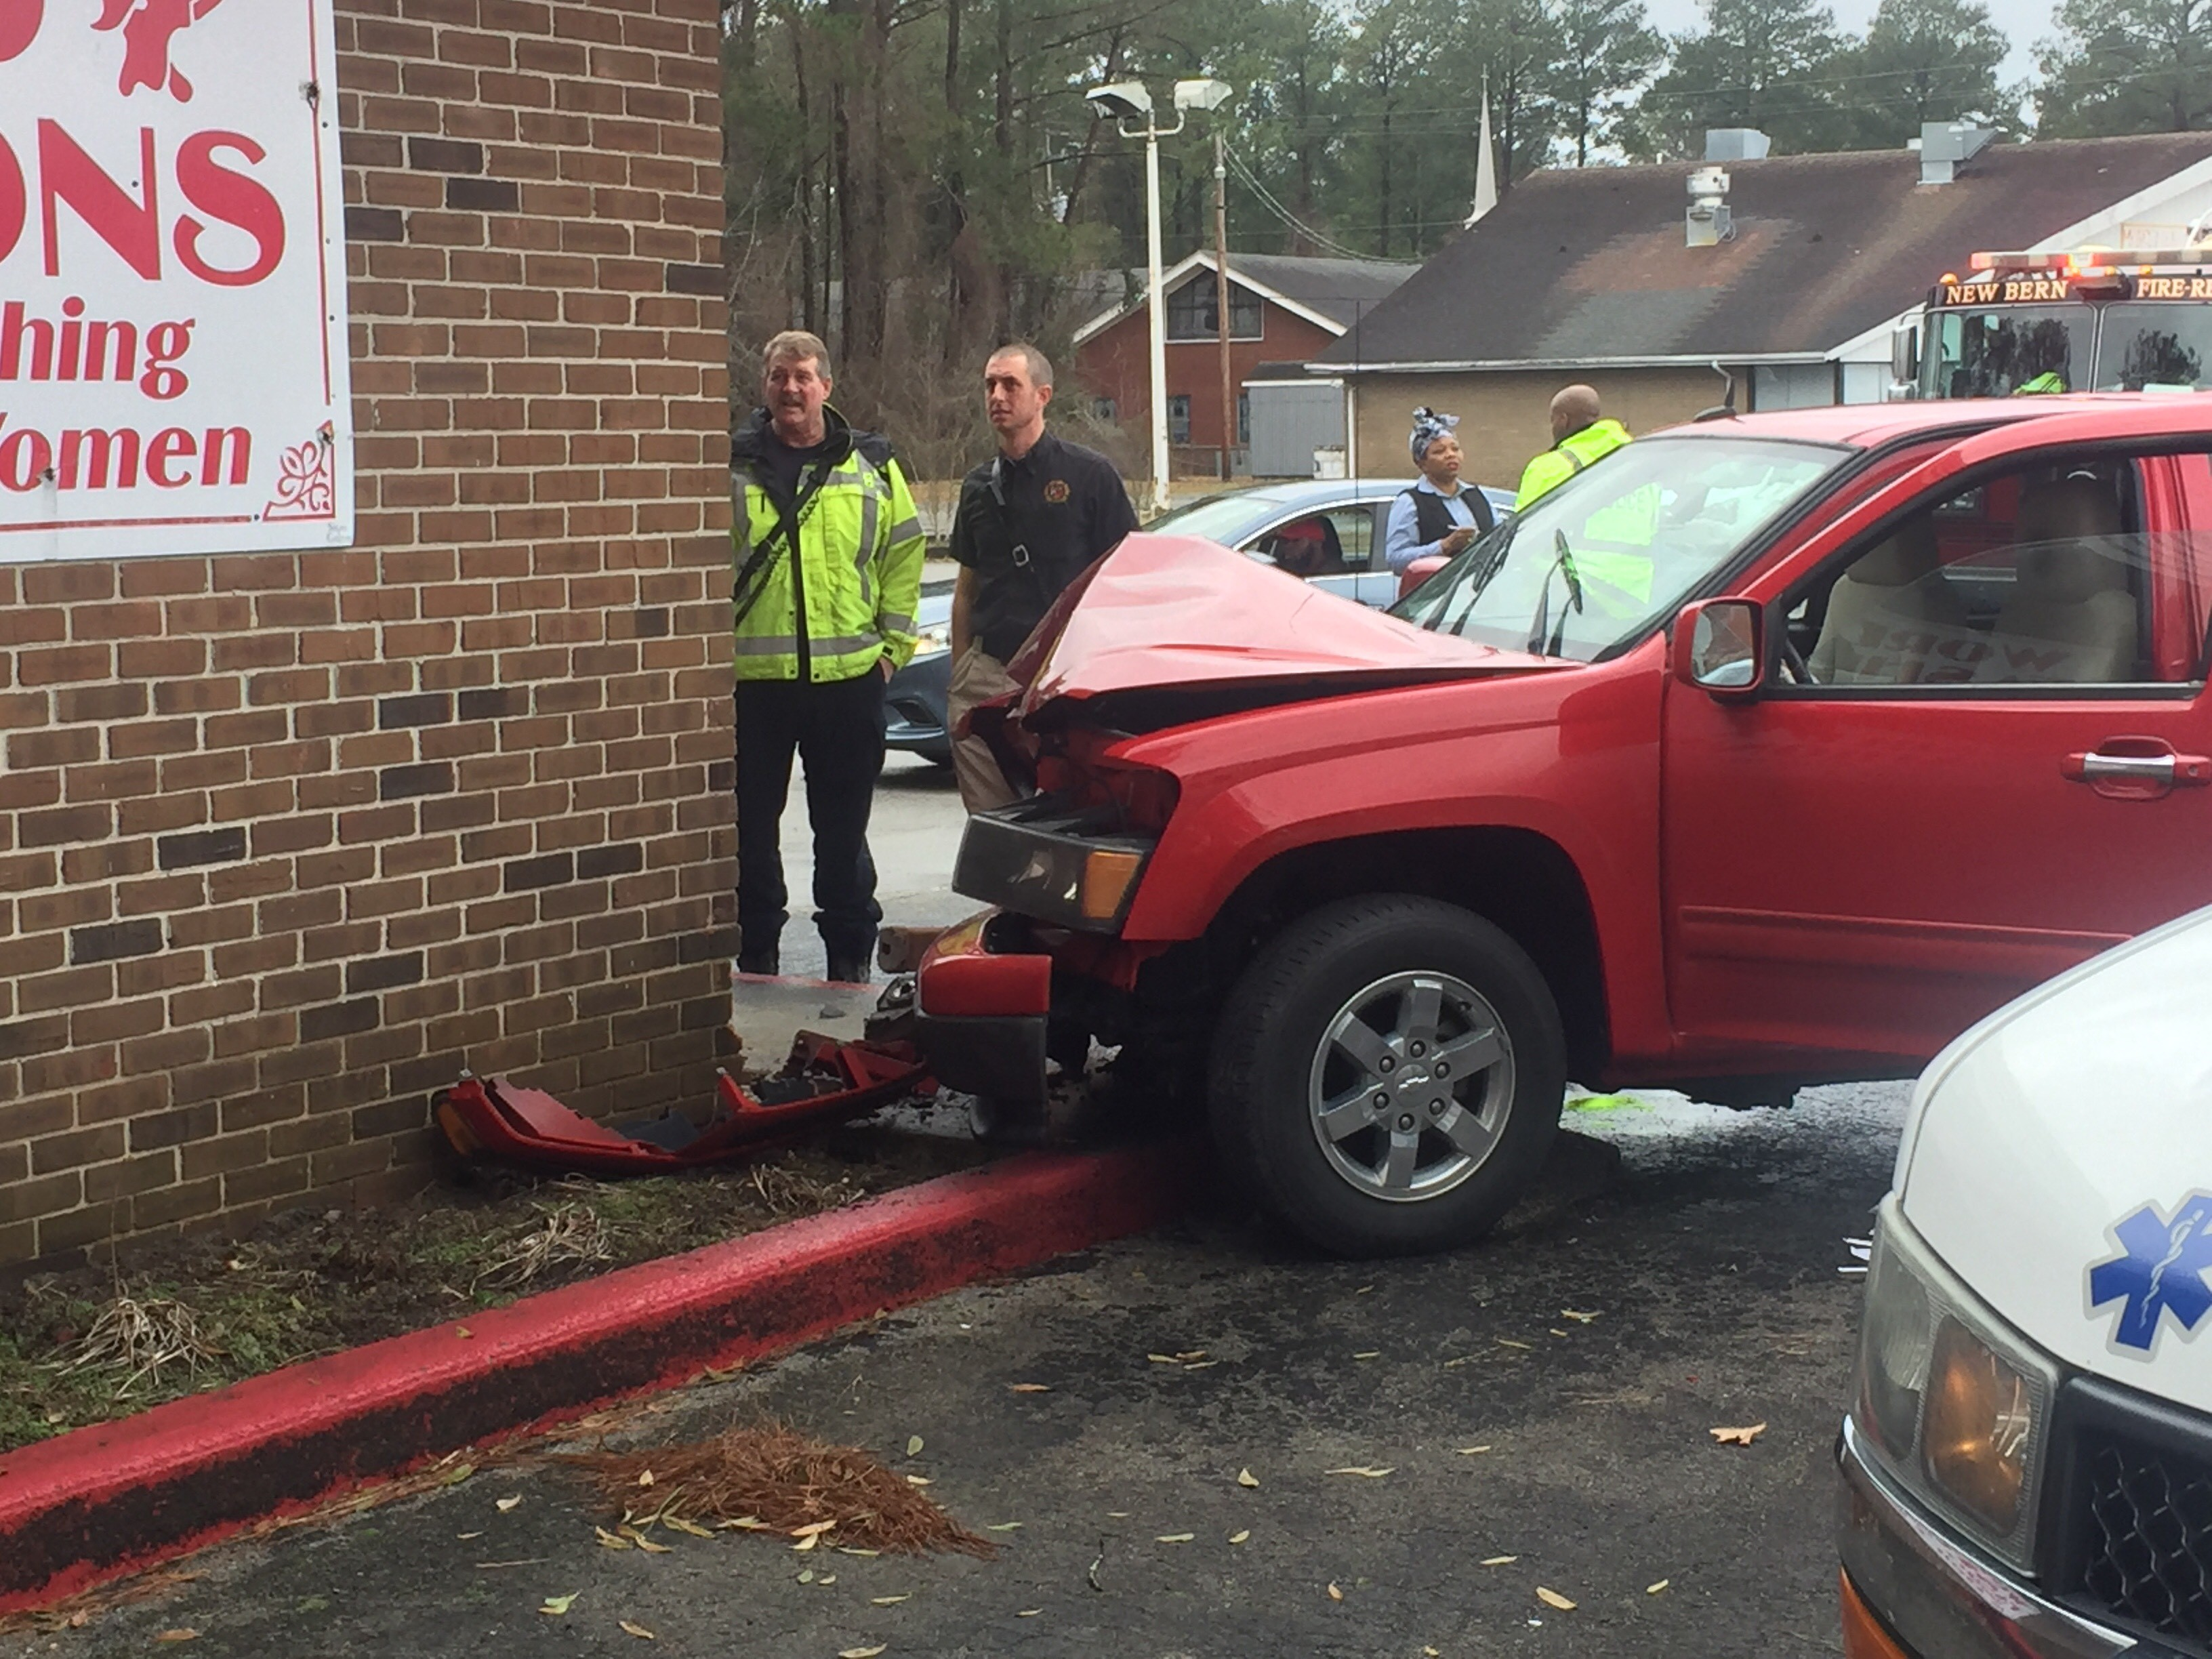 A driver suffering from a diabetic episode crashed into World Fashions clothing store on Neuse Blvd early January 23, 2018.